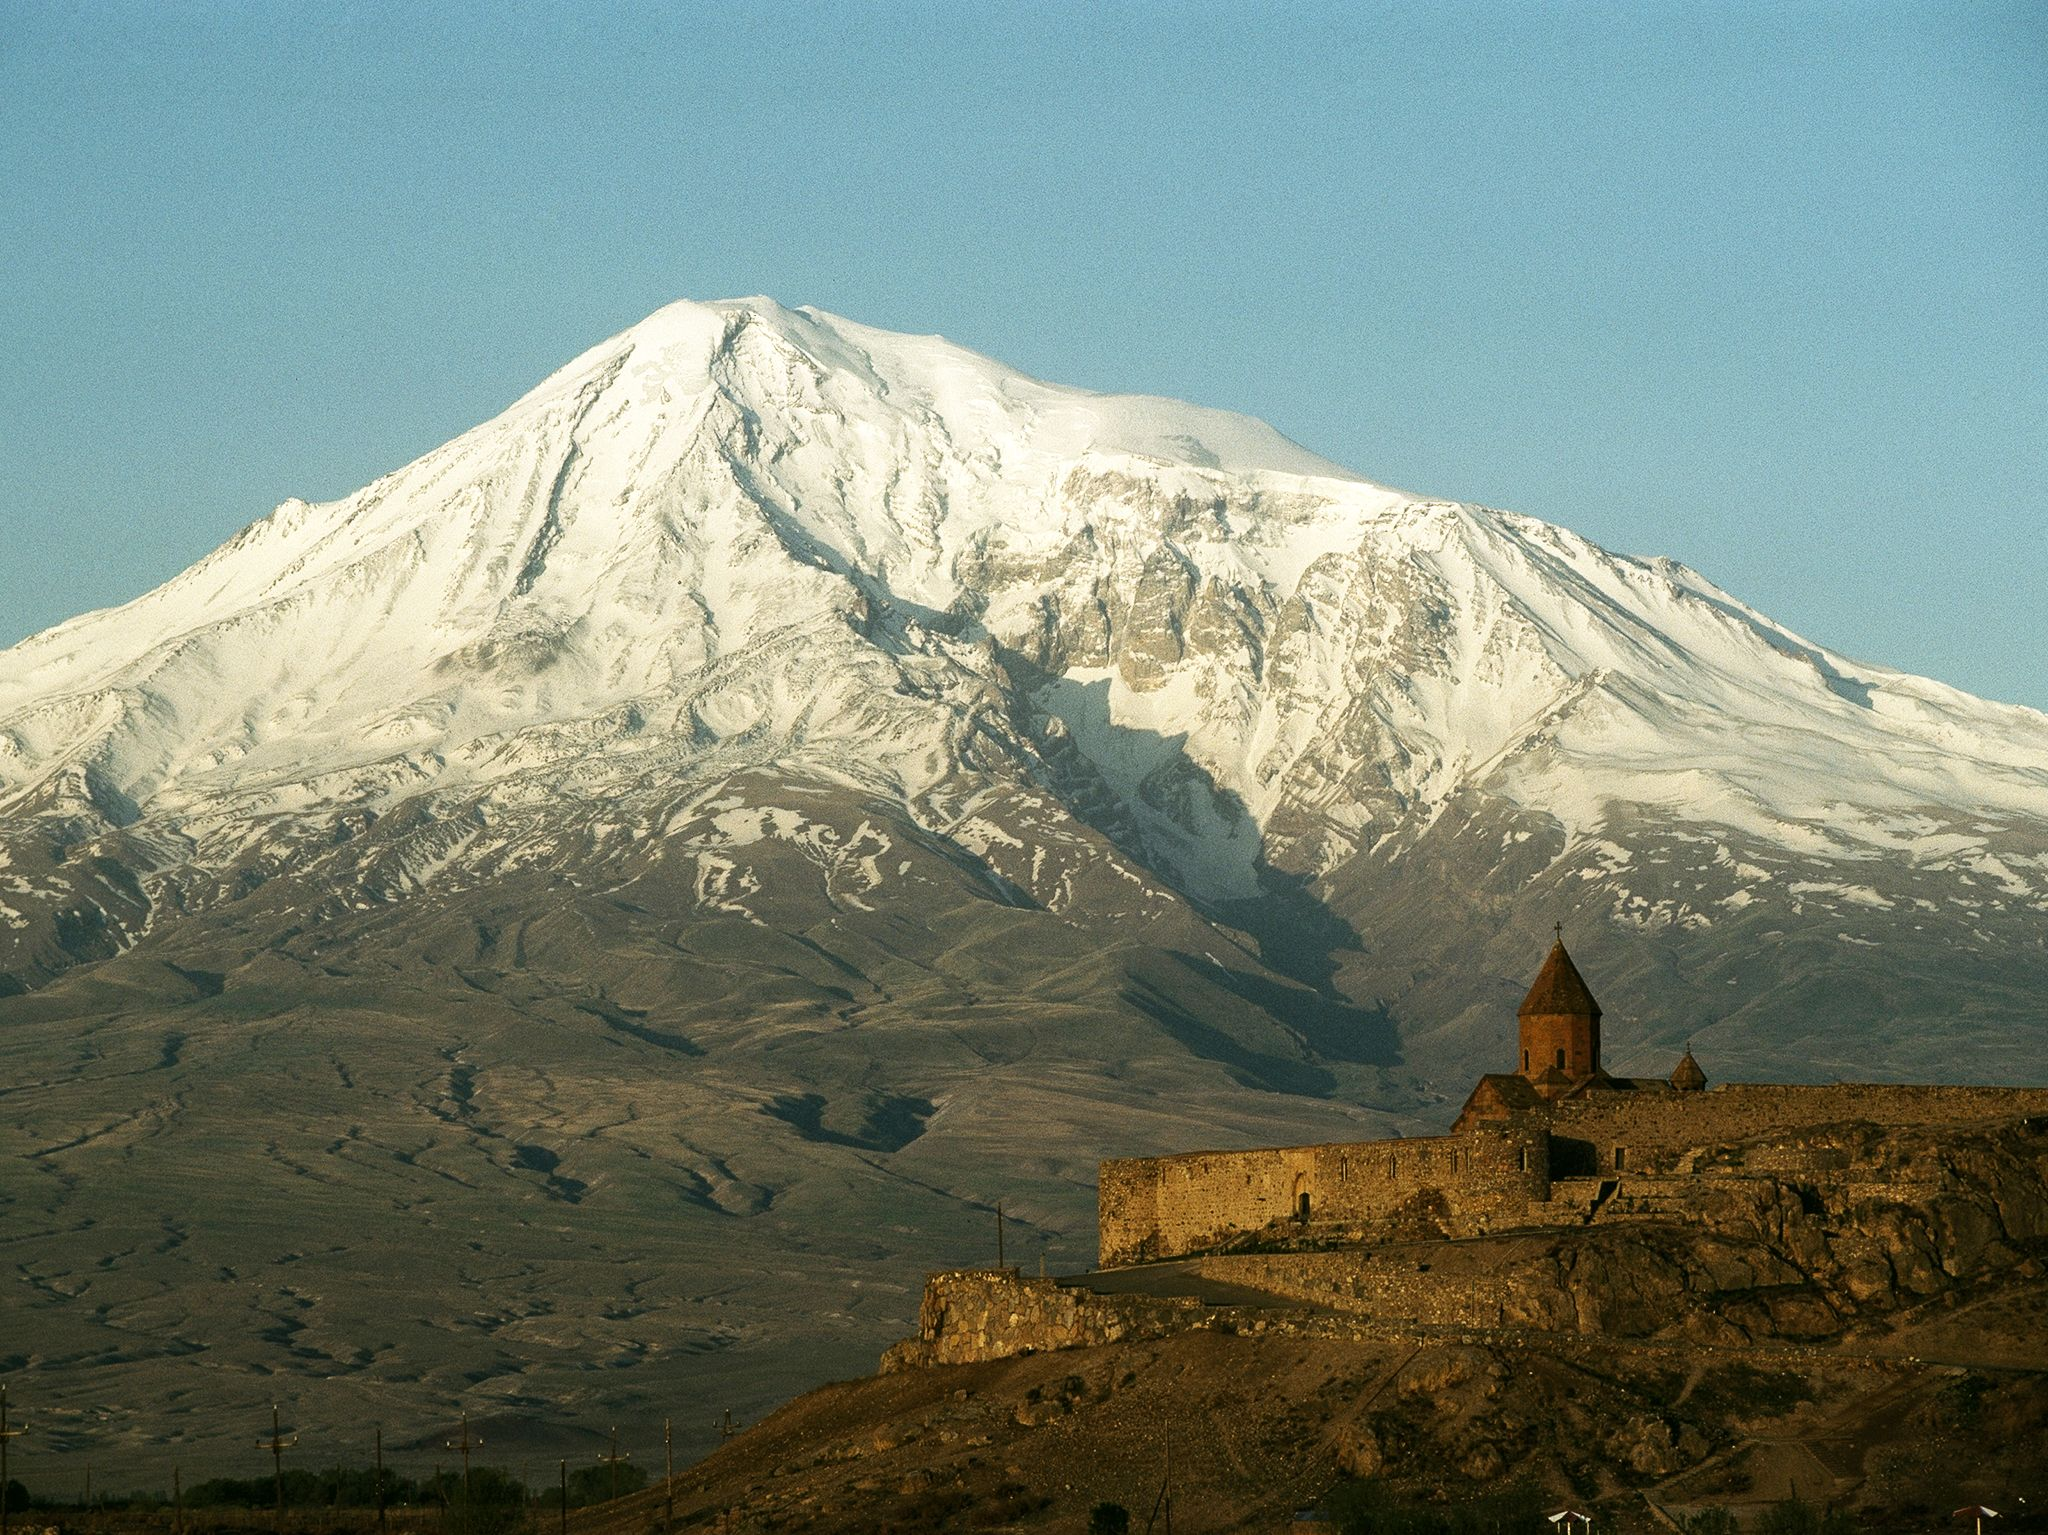 Mount Ararat, Turkey, viewed from Khor Viraph. This image is from Riddles of the Bible. [Photo of the day - 八月 2017]